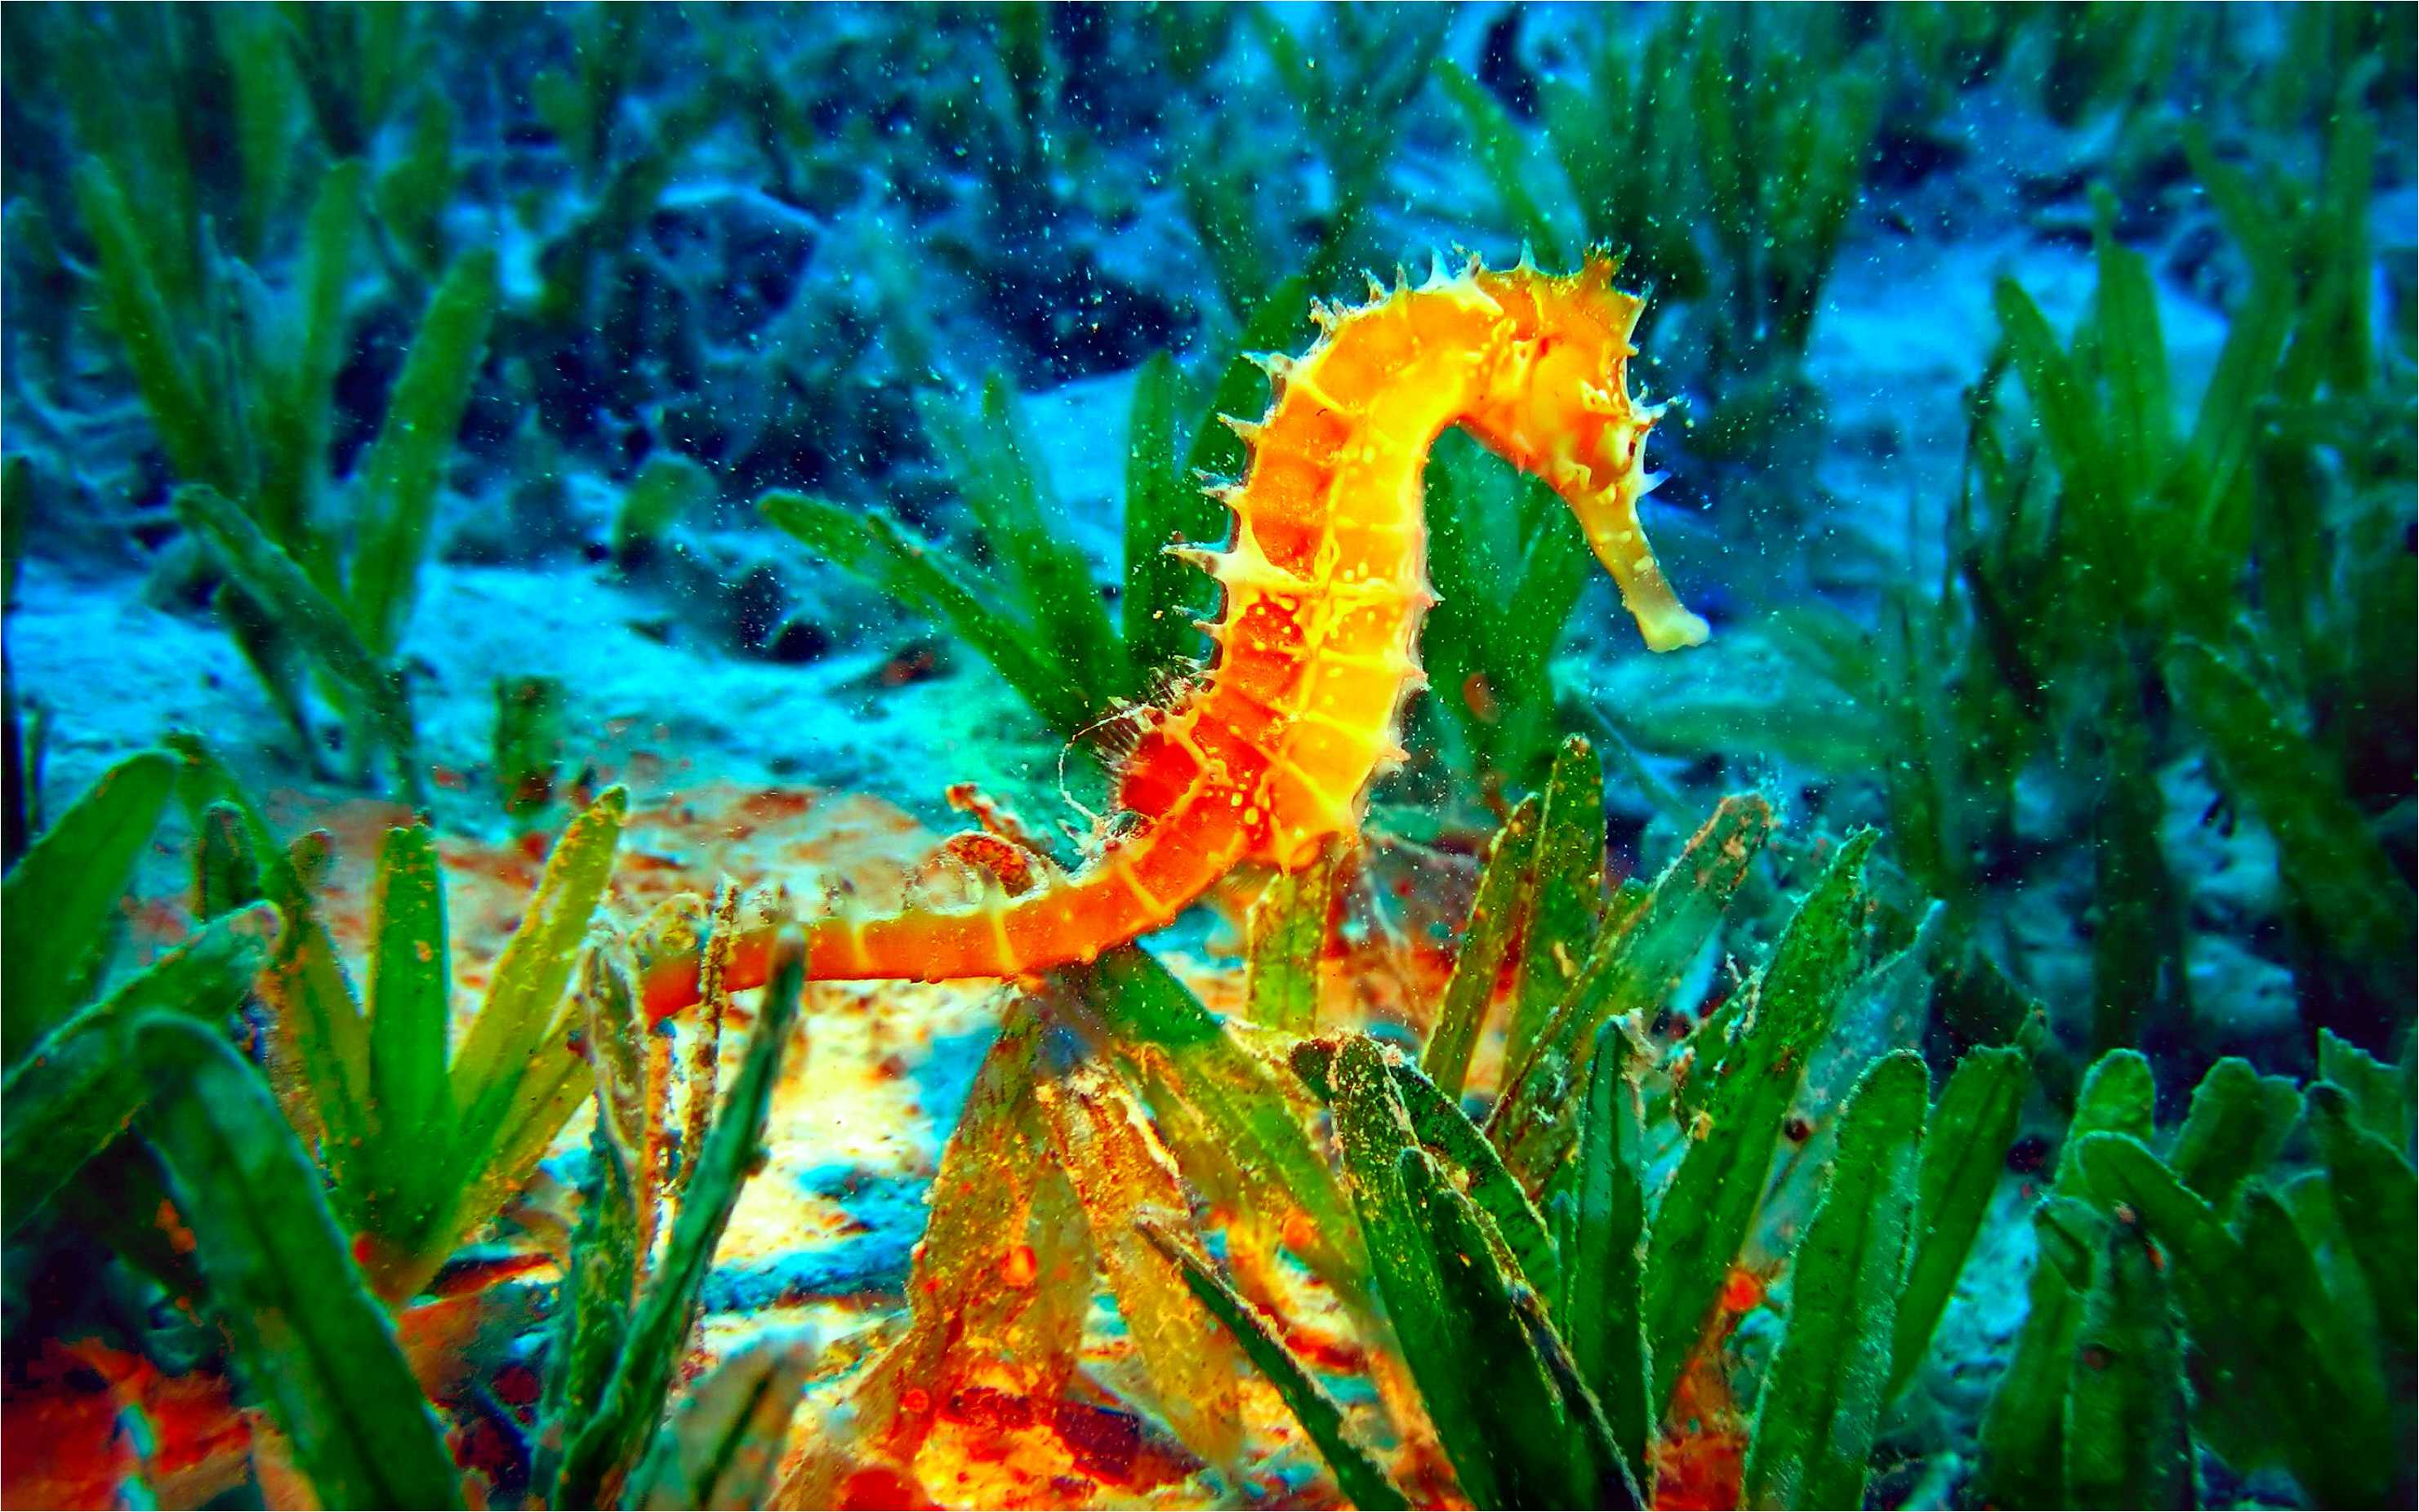 40 Seahorse Android Iphone Desktop Hd Backgrounds Wallpapers 1080p 4k 2962x1852 2020